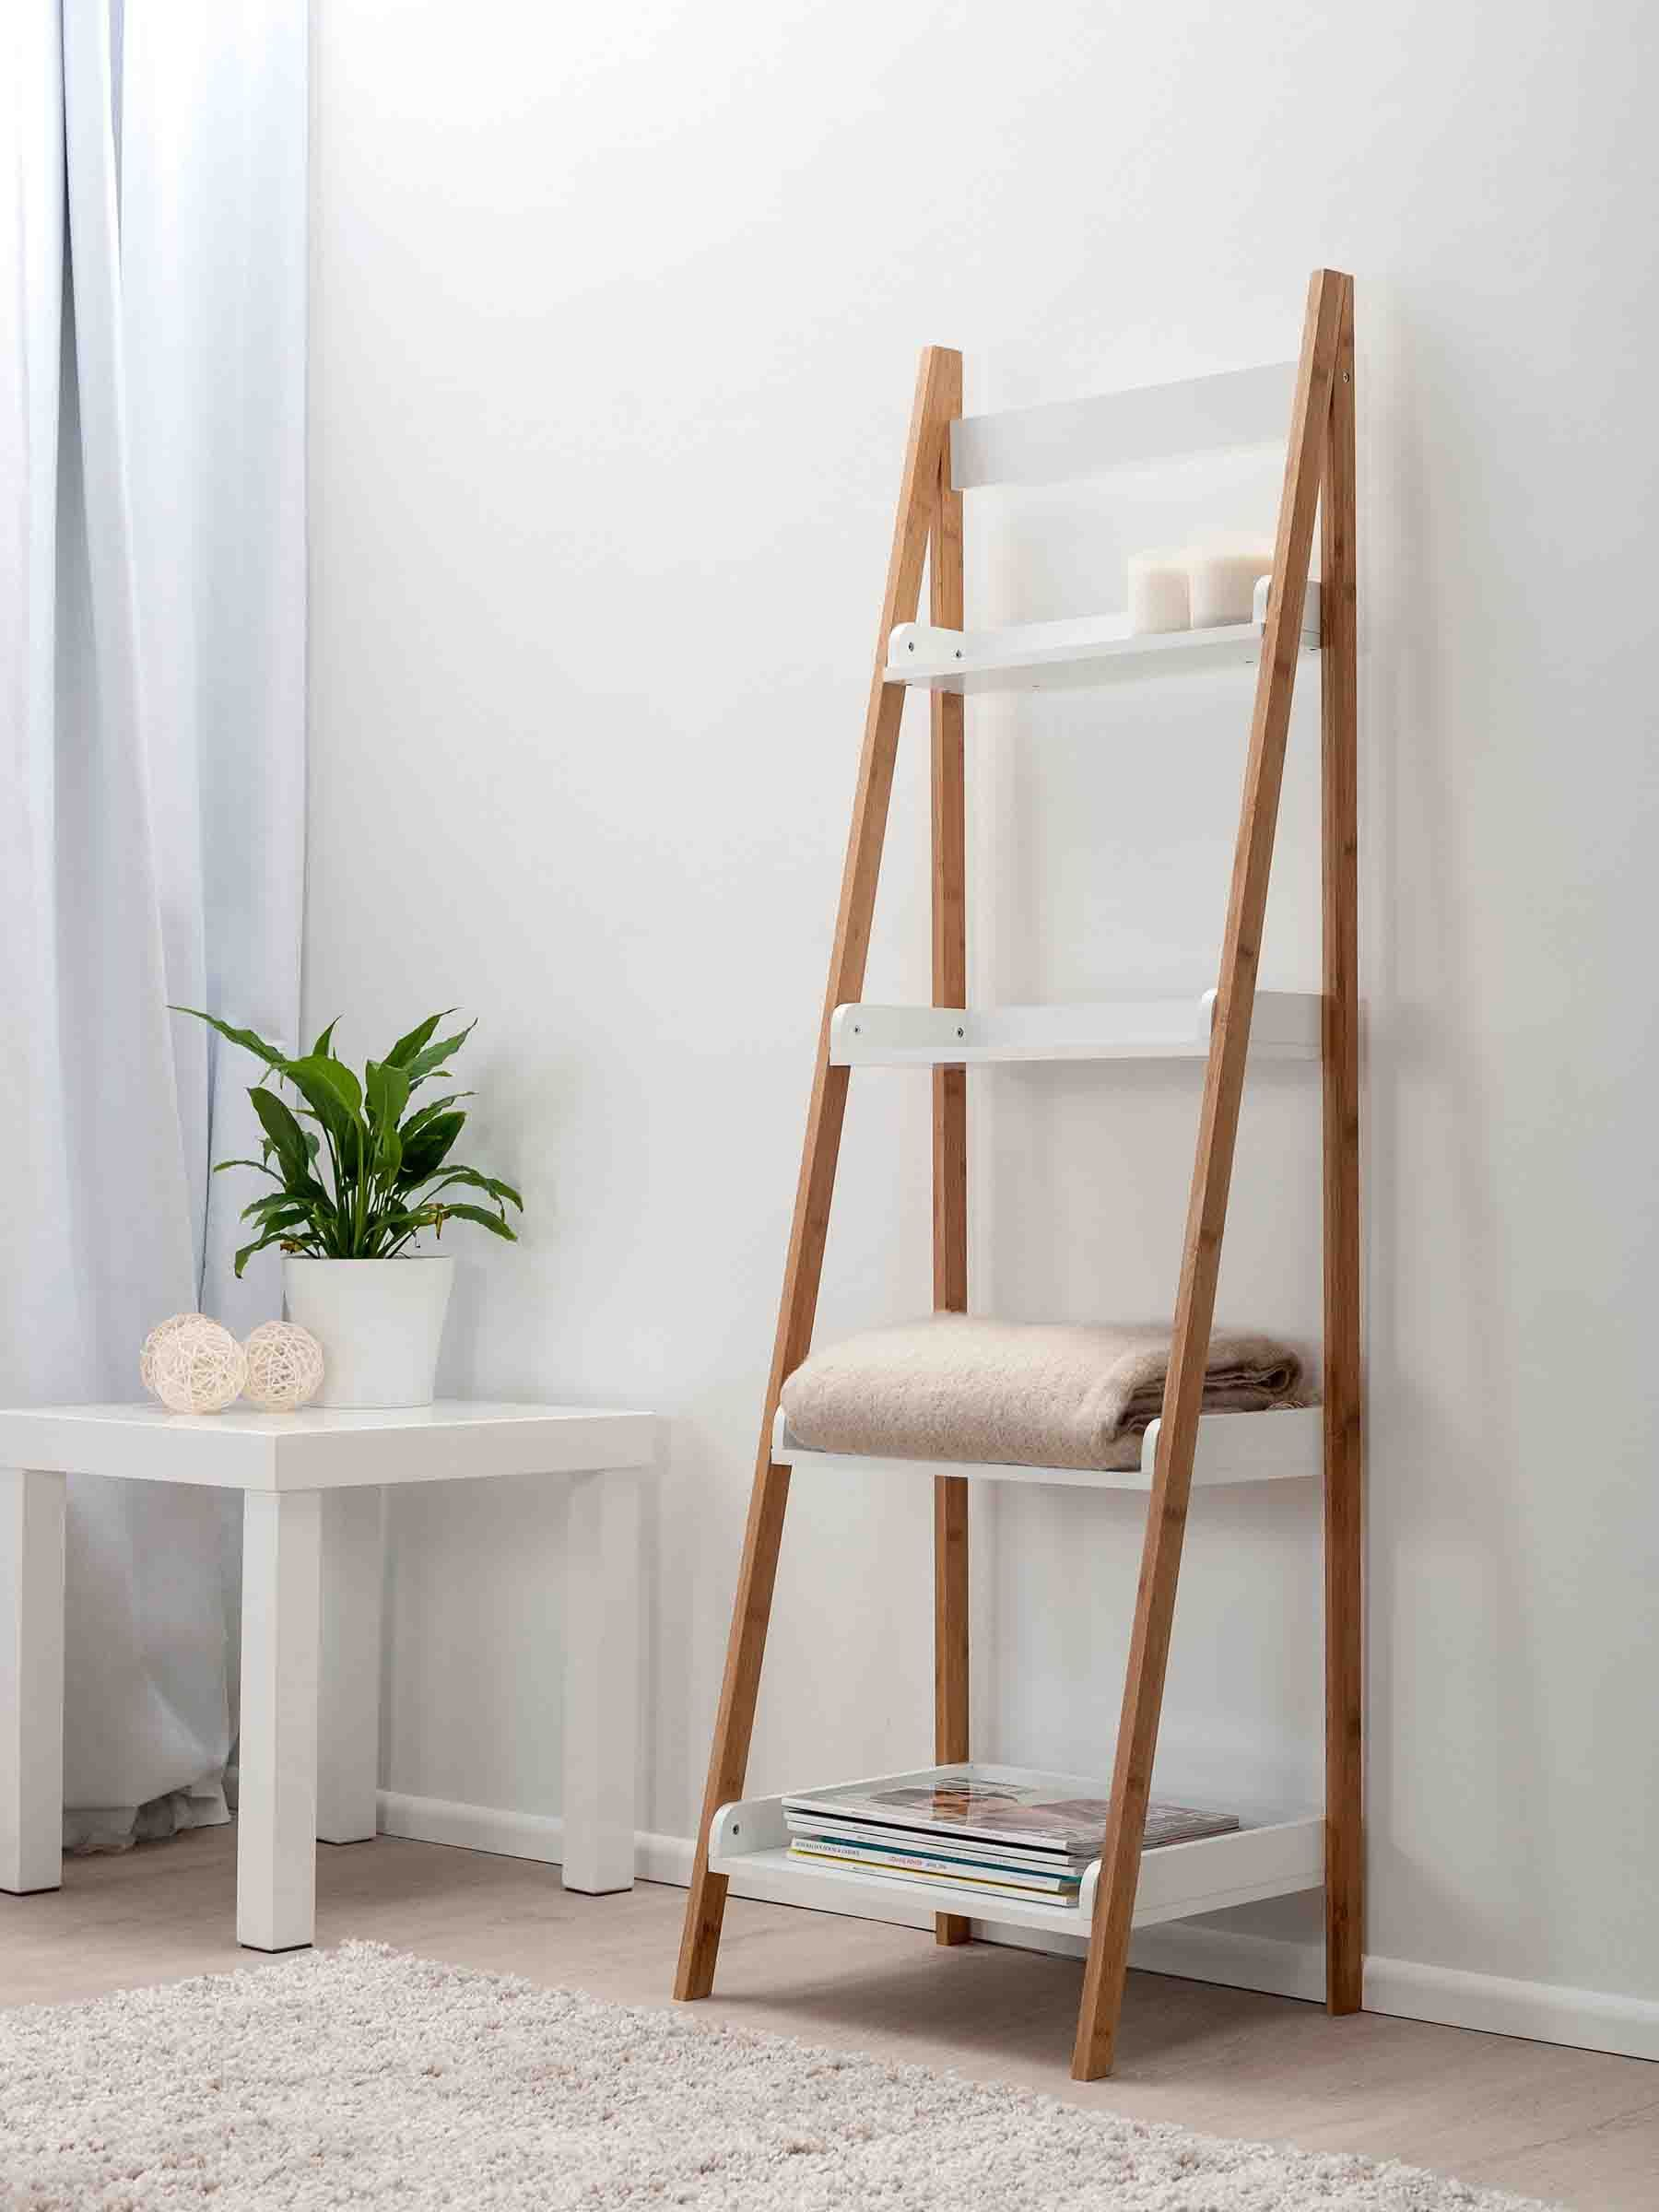 Mockas Maya Ladder Shelf Is A Simple But Stylish Way